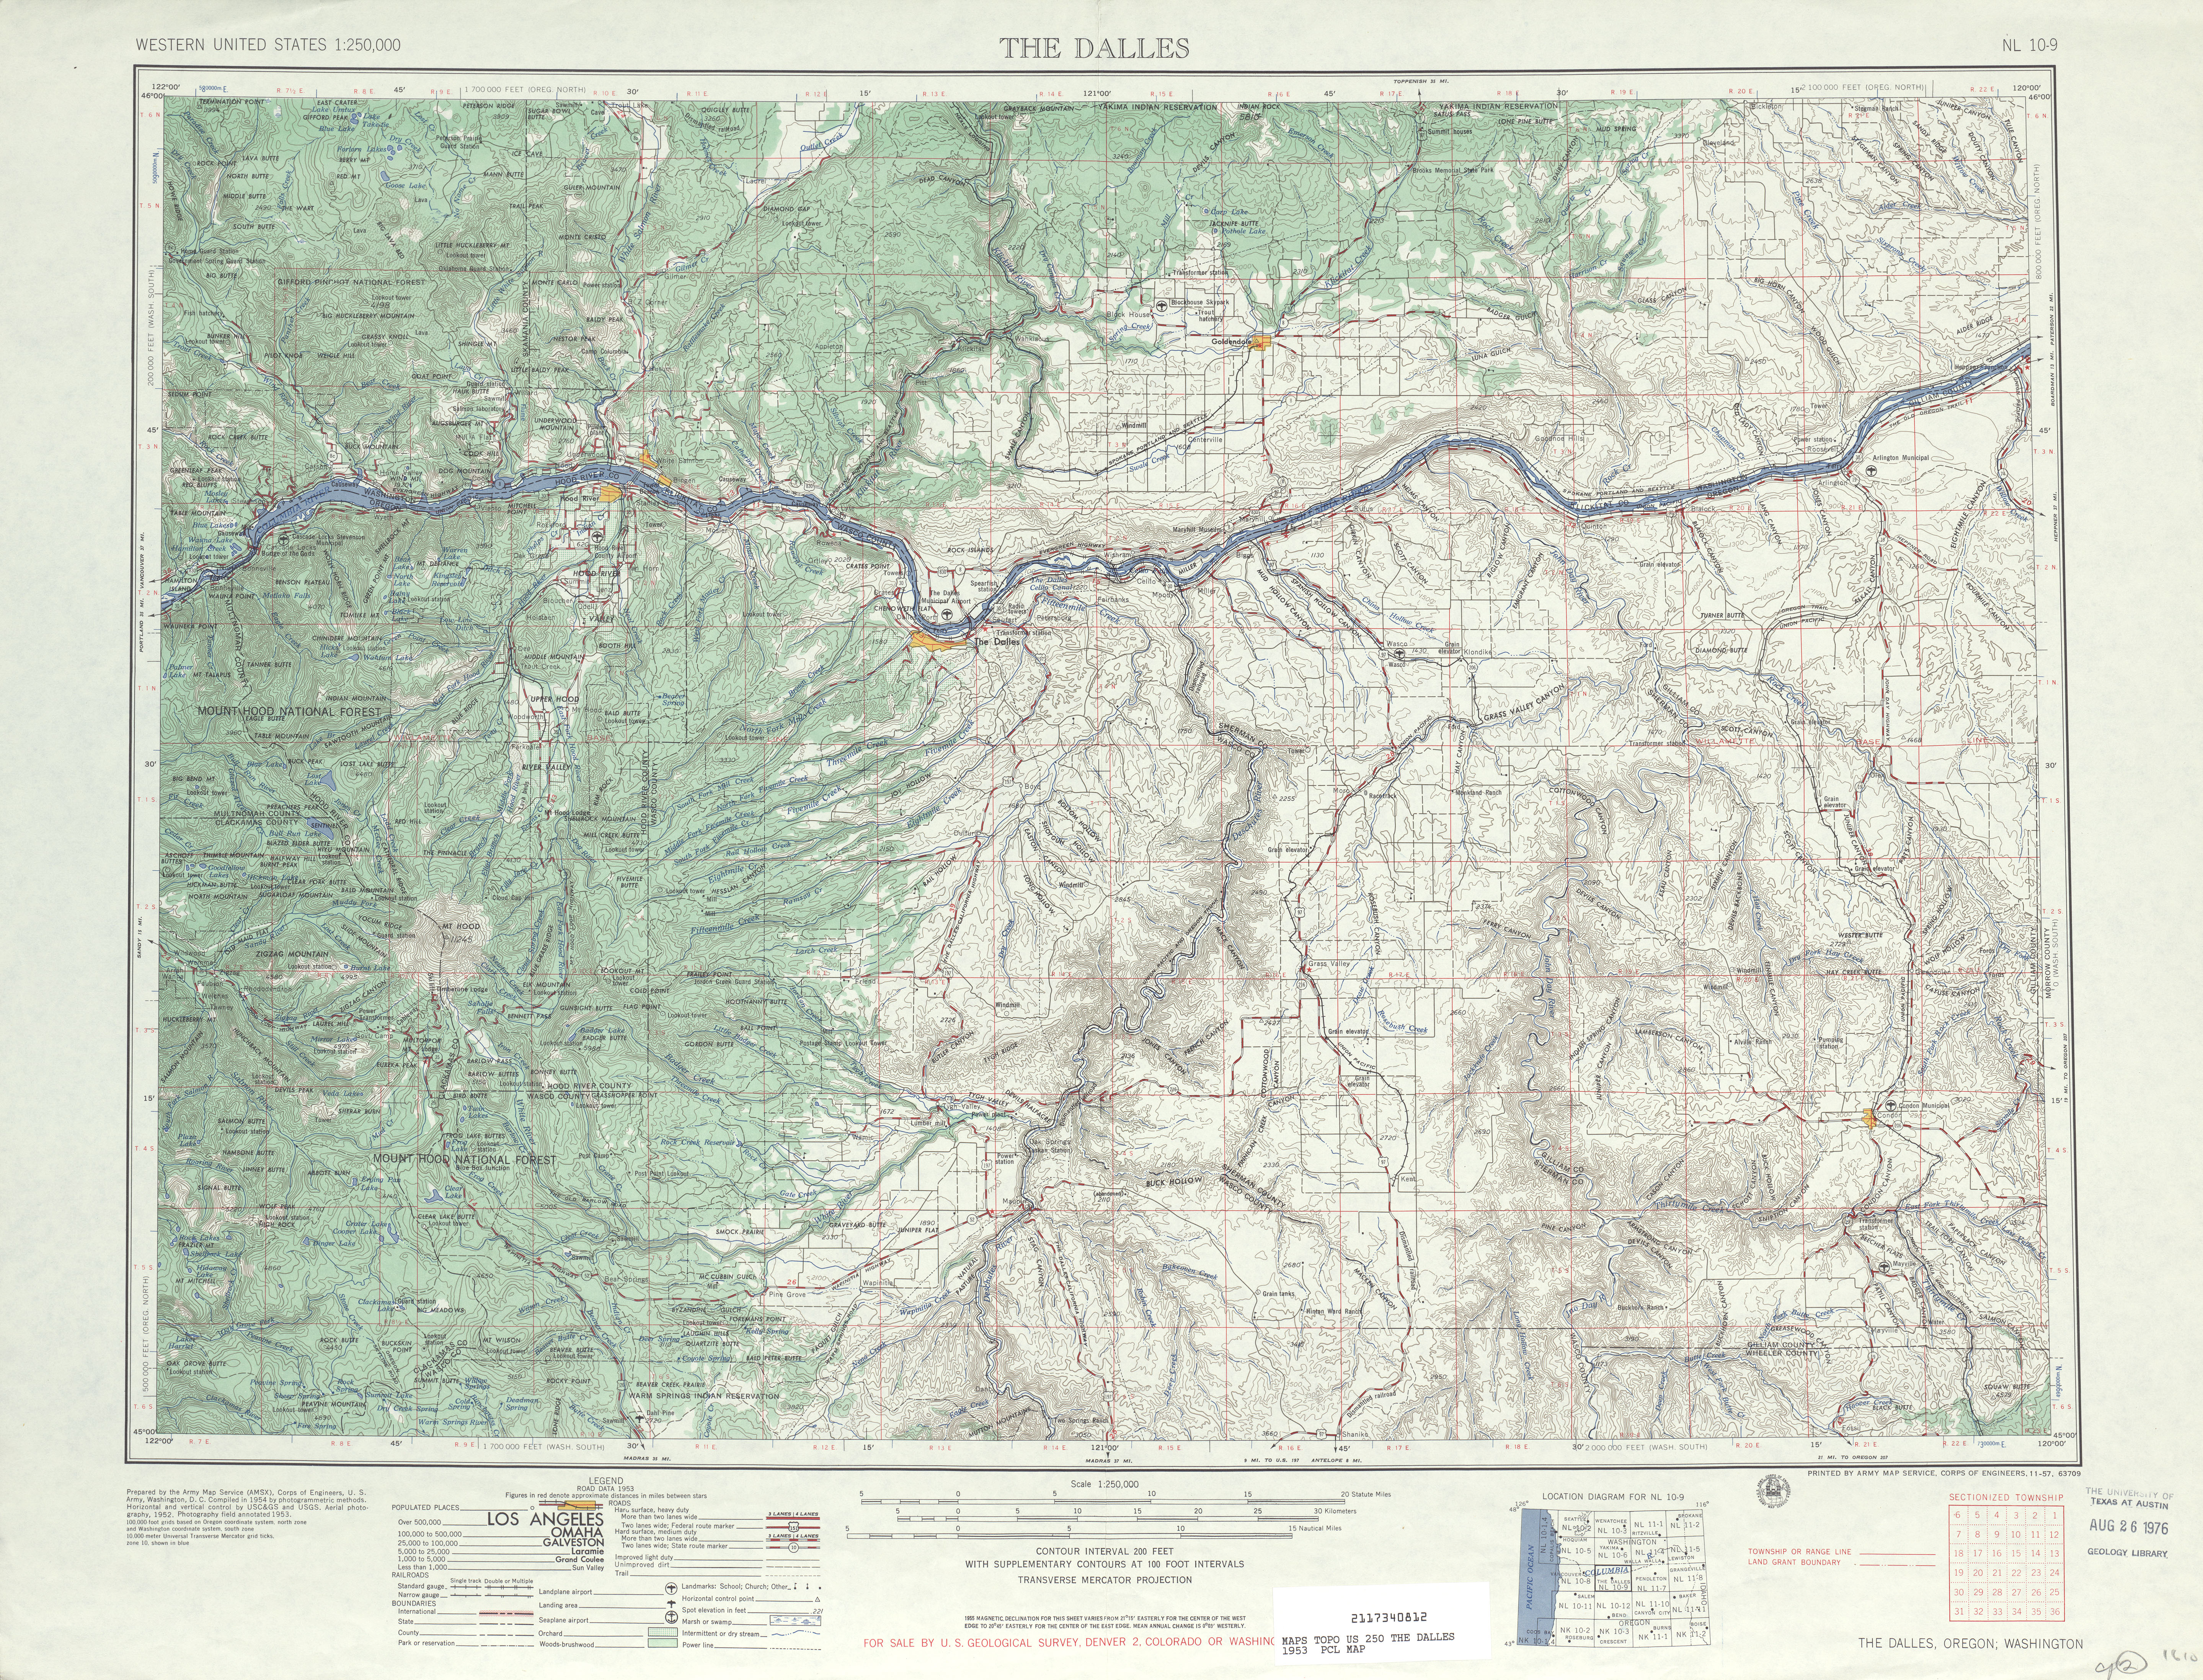 The Dalles Topographic Map Sheet, United States 1953